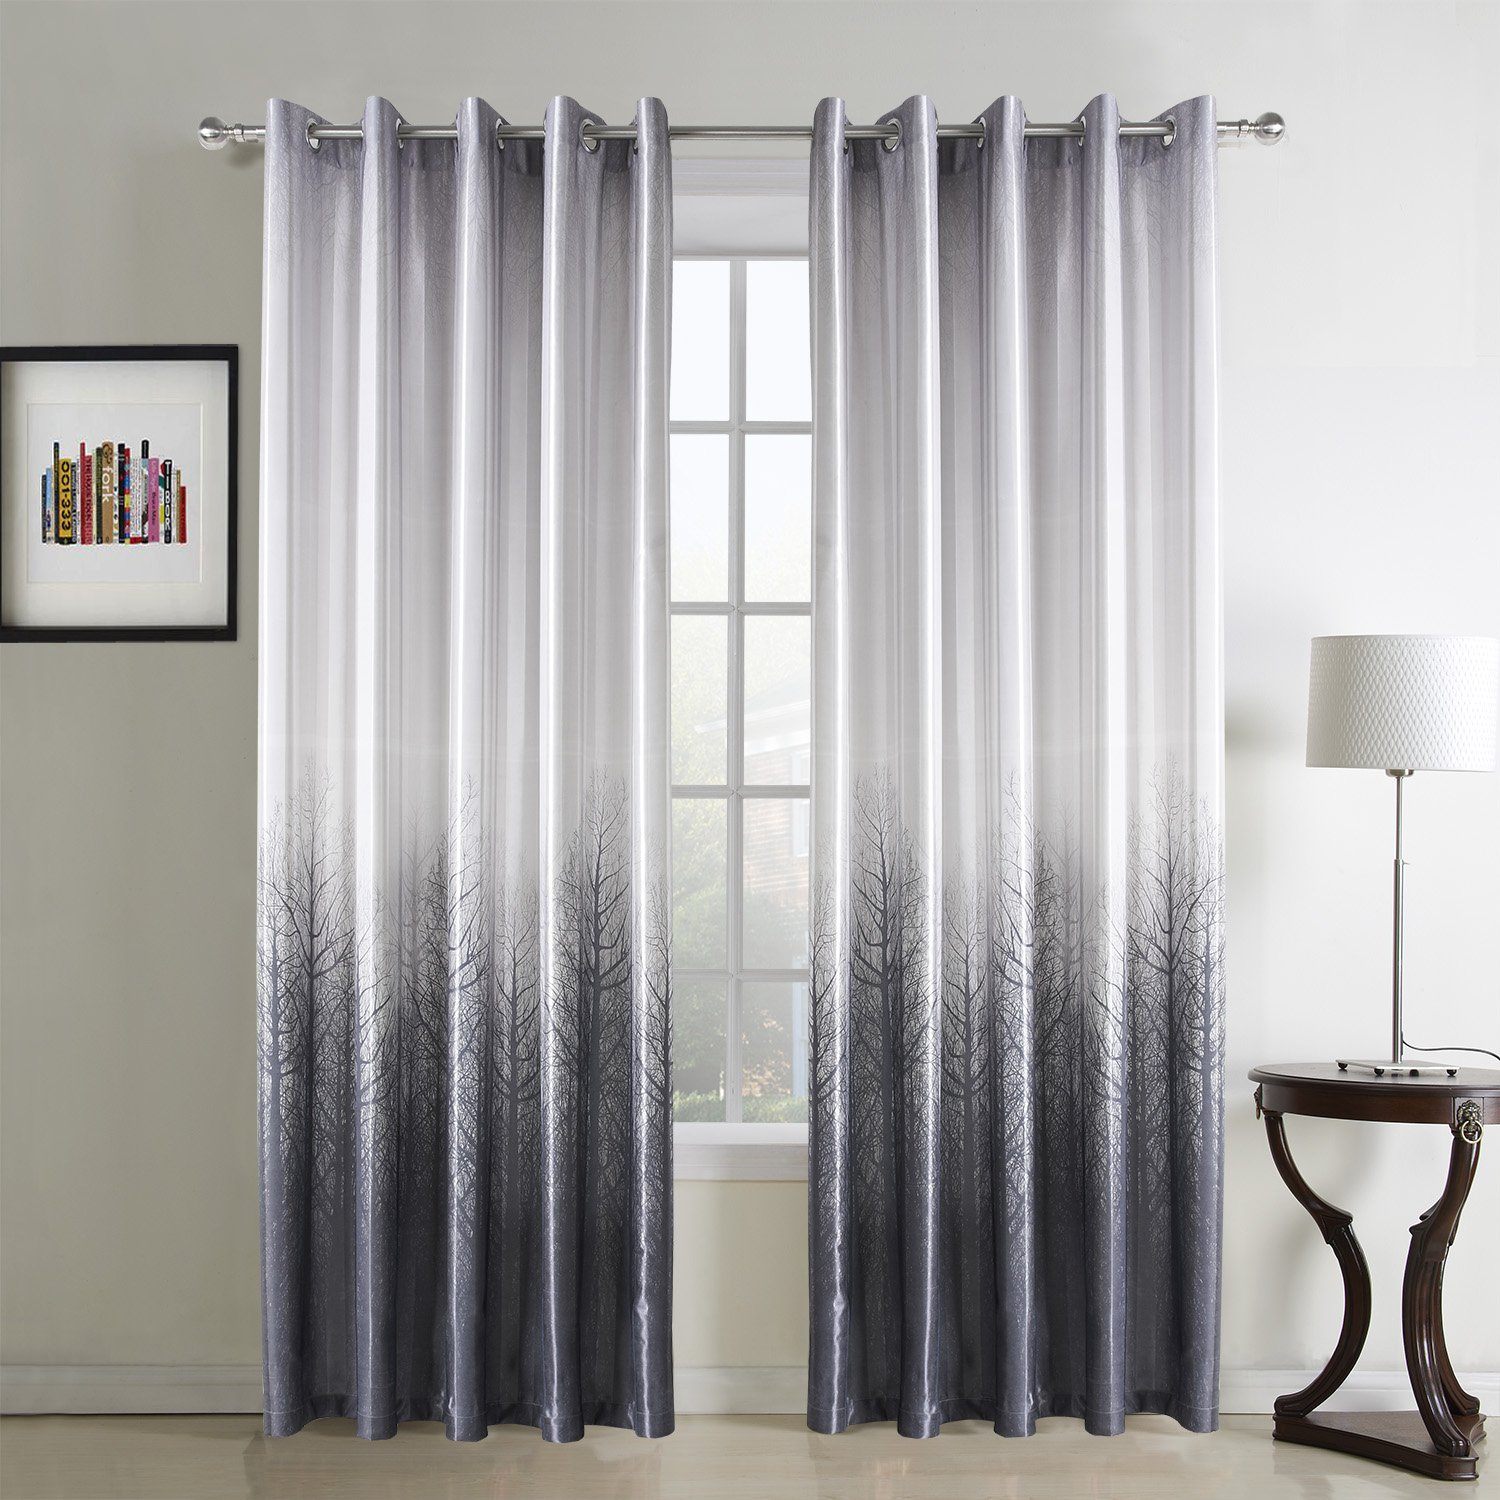 GWELL Tree Print Thermal Supersoft Eyelet Ring Top Curtains For Living Room Bedroom White Grey